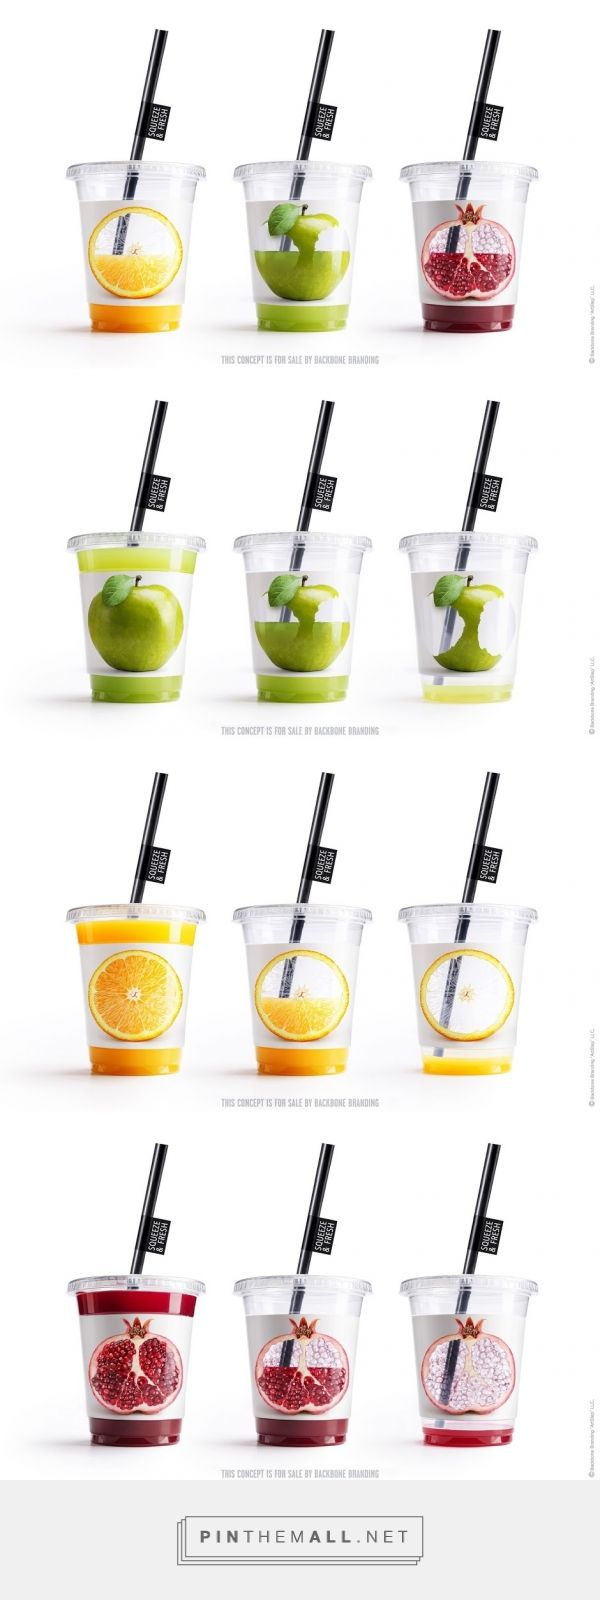 Glass juice cups design - Design Packaging